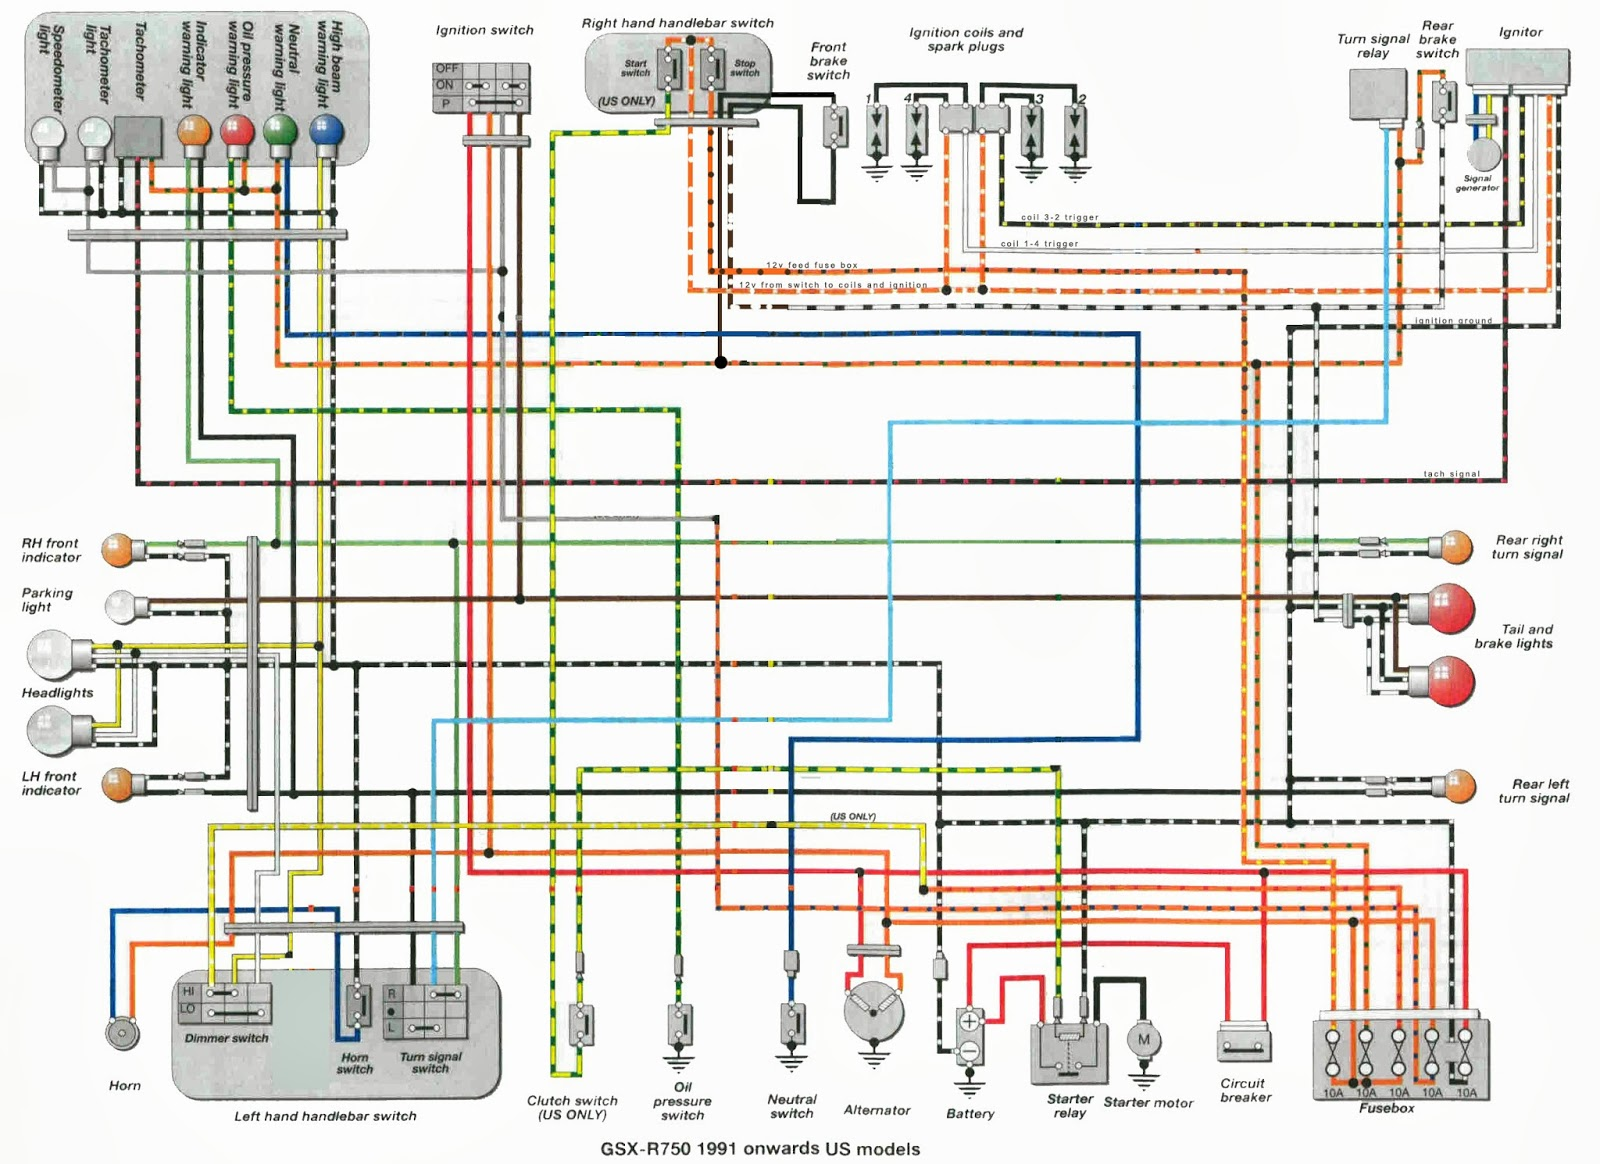 Diagram 2005 Gsxr Wiring Diagram Full Version Hd Quality Wiring Diagram Shoulderdiagram Scacchiruta It